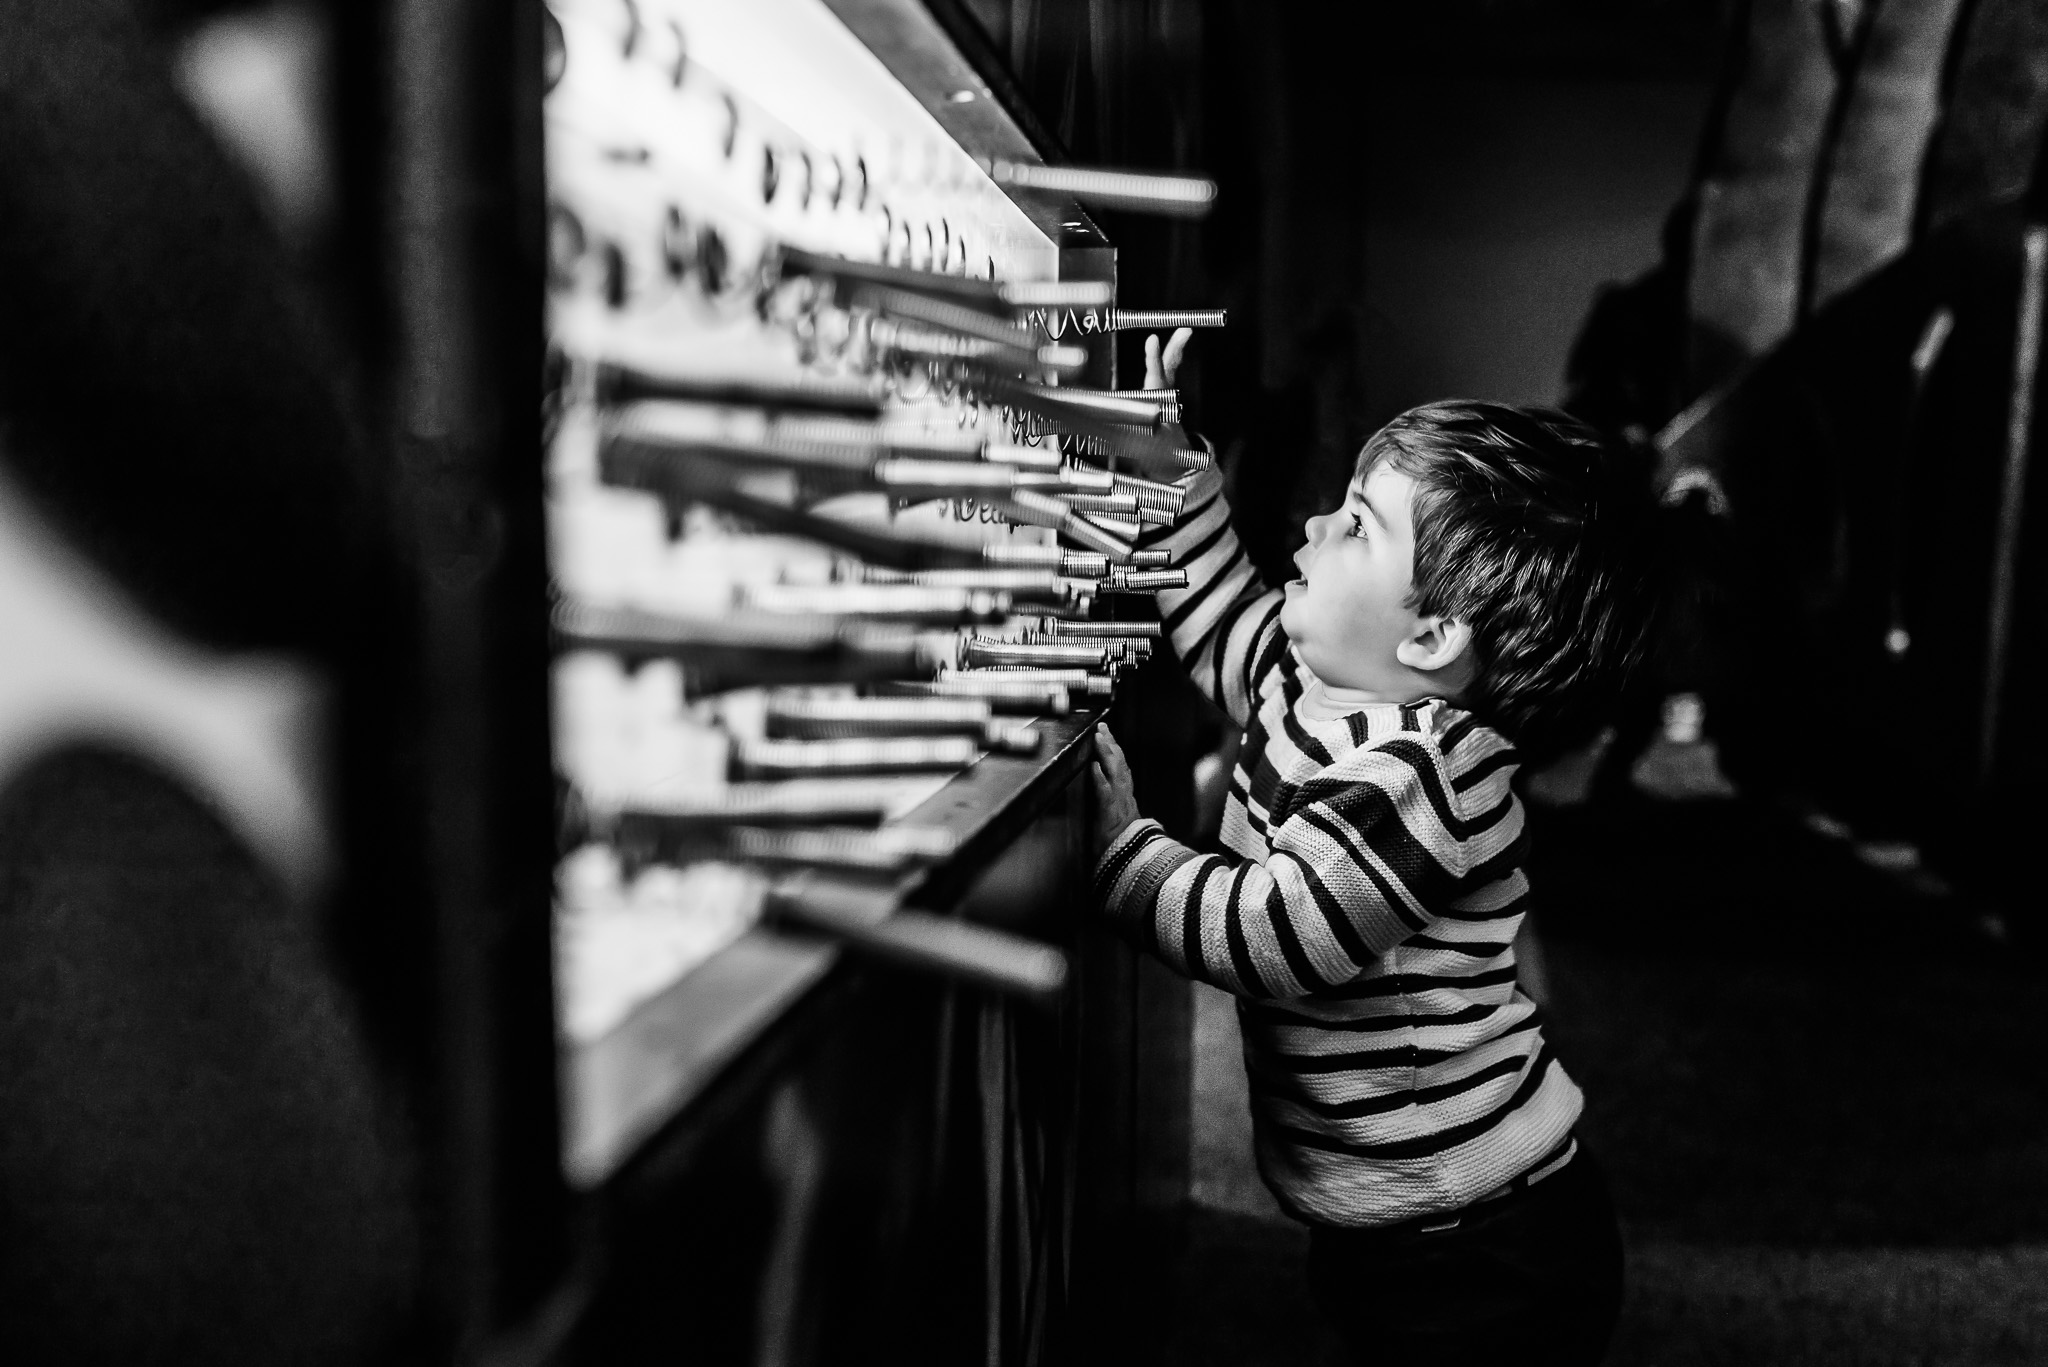 Copy of baby exploring - black and white conversion.